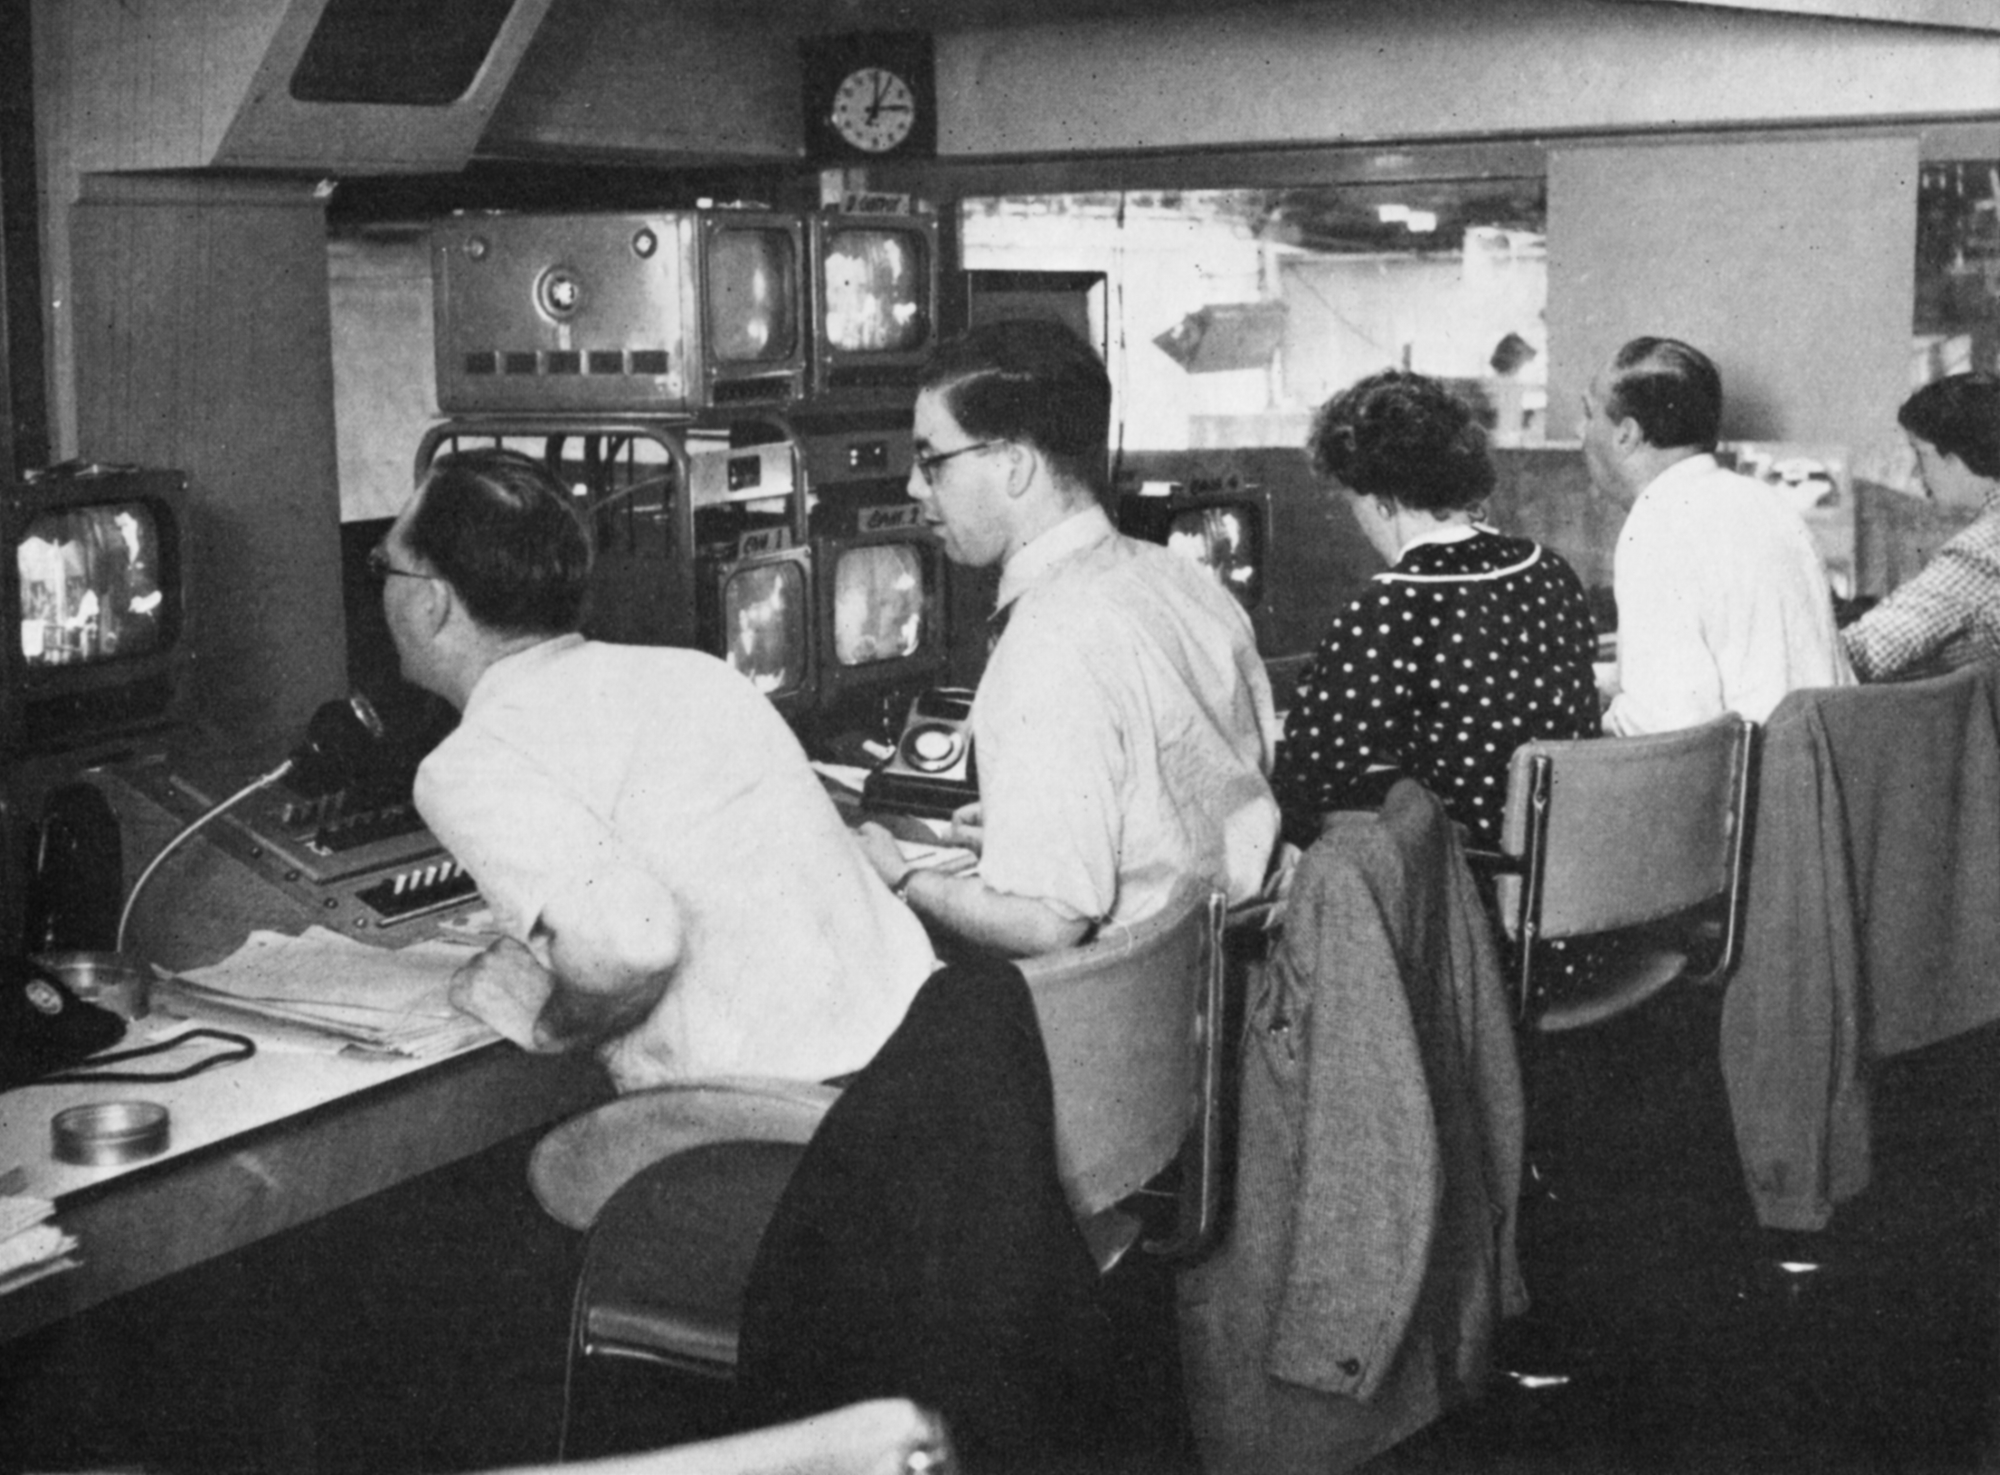 Three men and two women at a control desk covered in monitors.